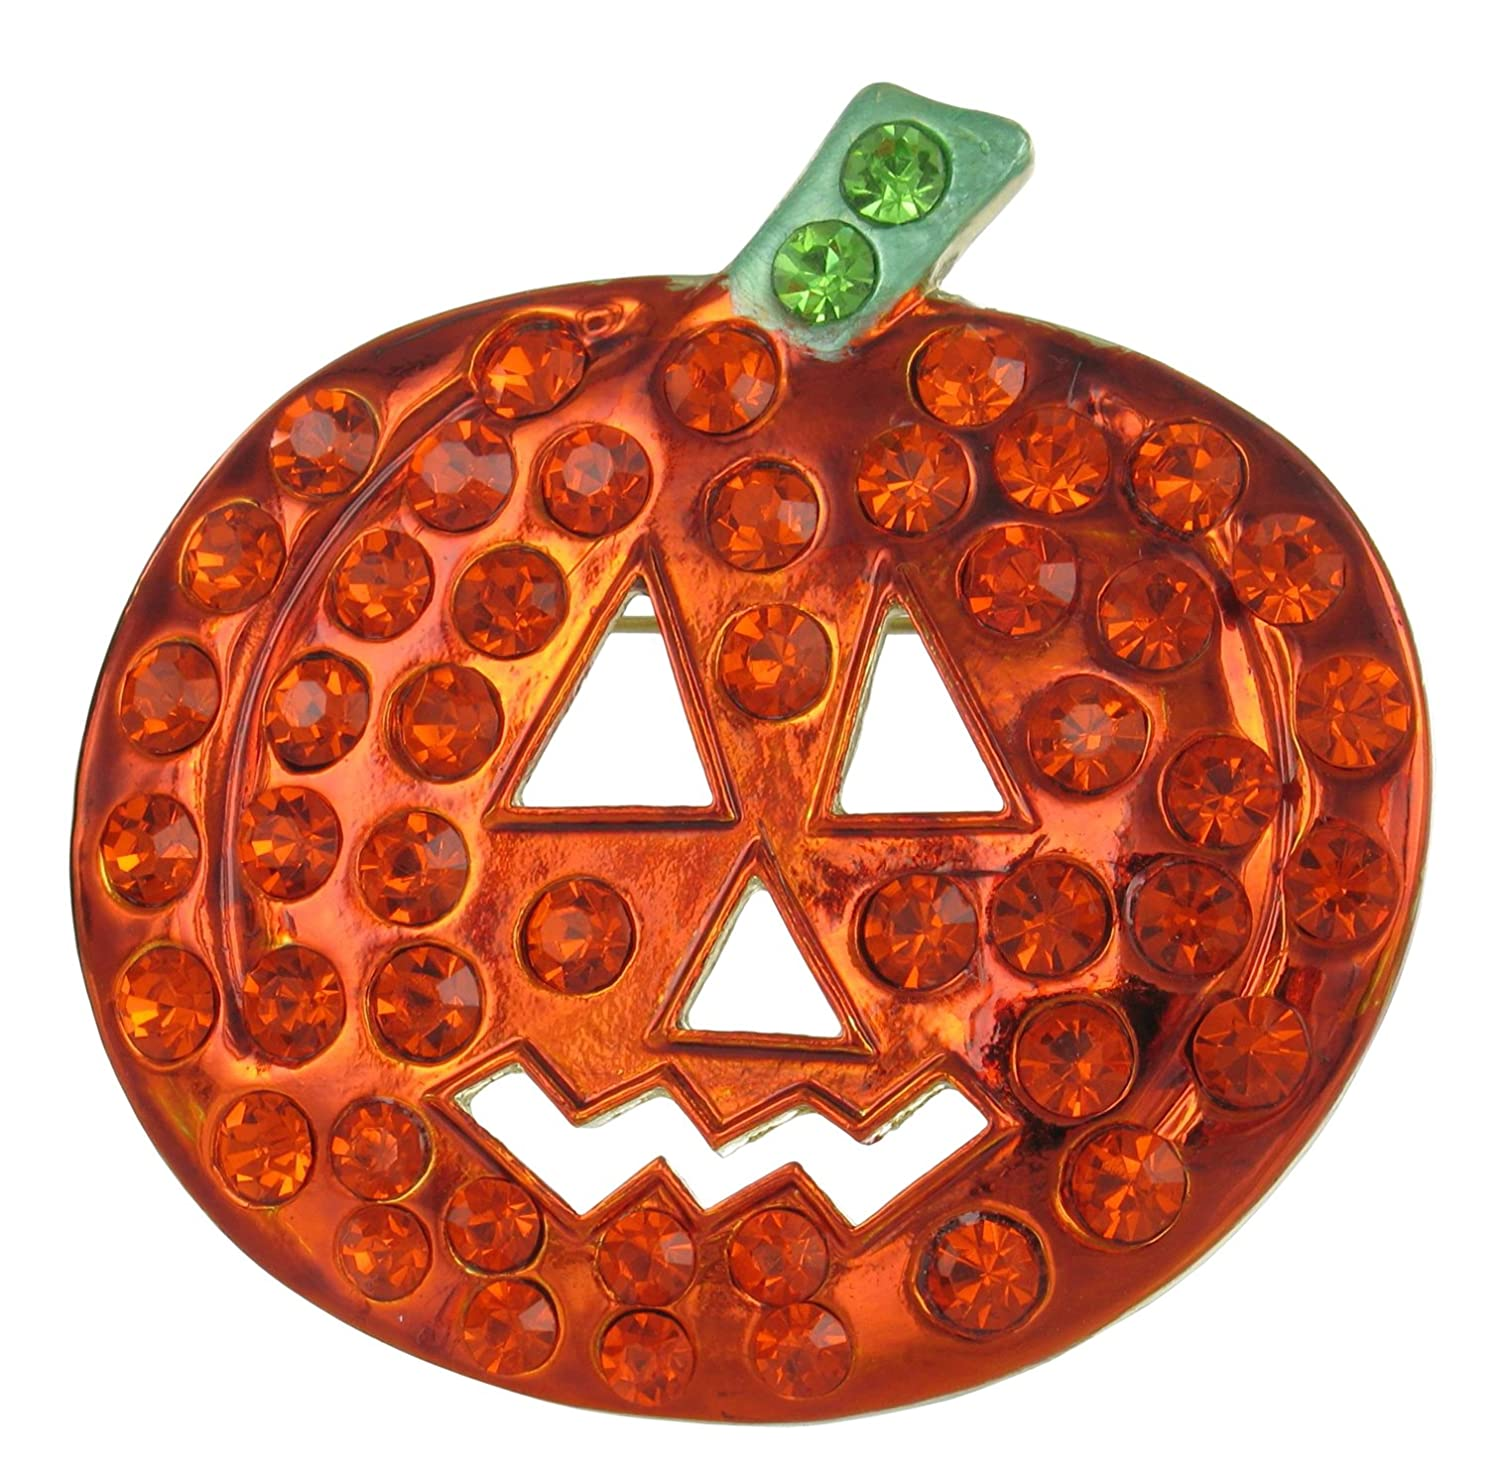 Extra Large Jack-O-Lantern Rhinestone Brooch Pin - Pumpkin Halloween Jewelry and Party Favor RUL 00-91728HYGR